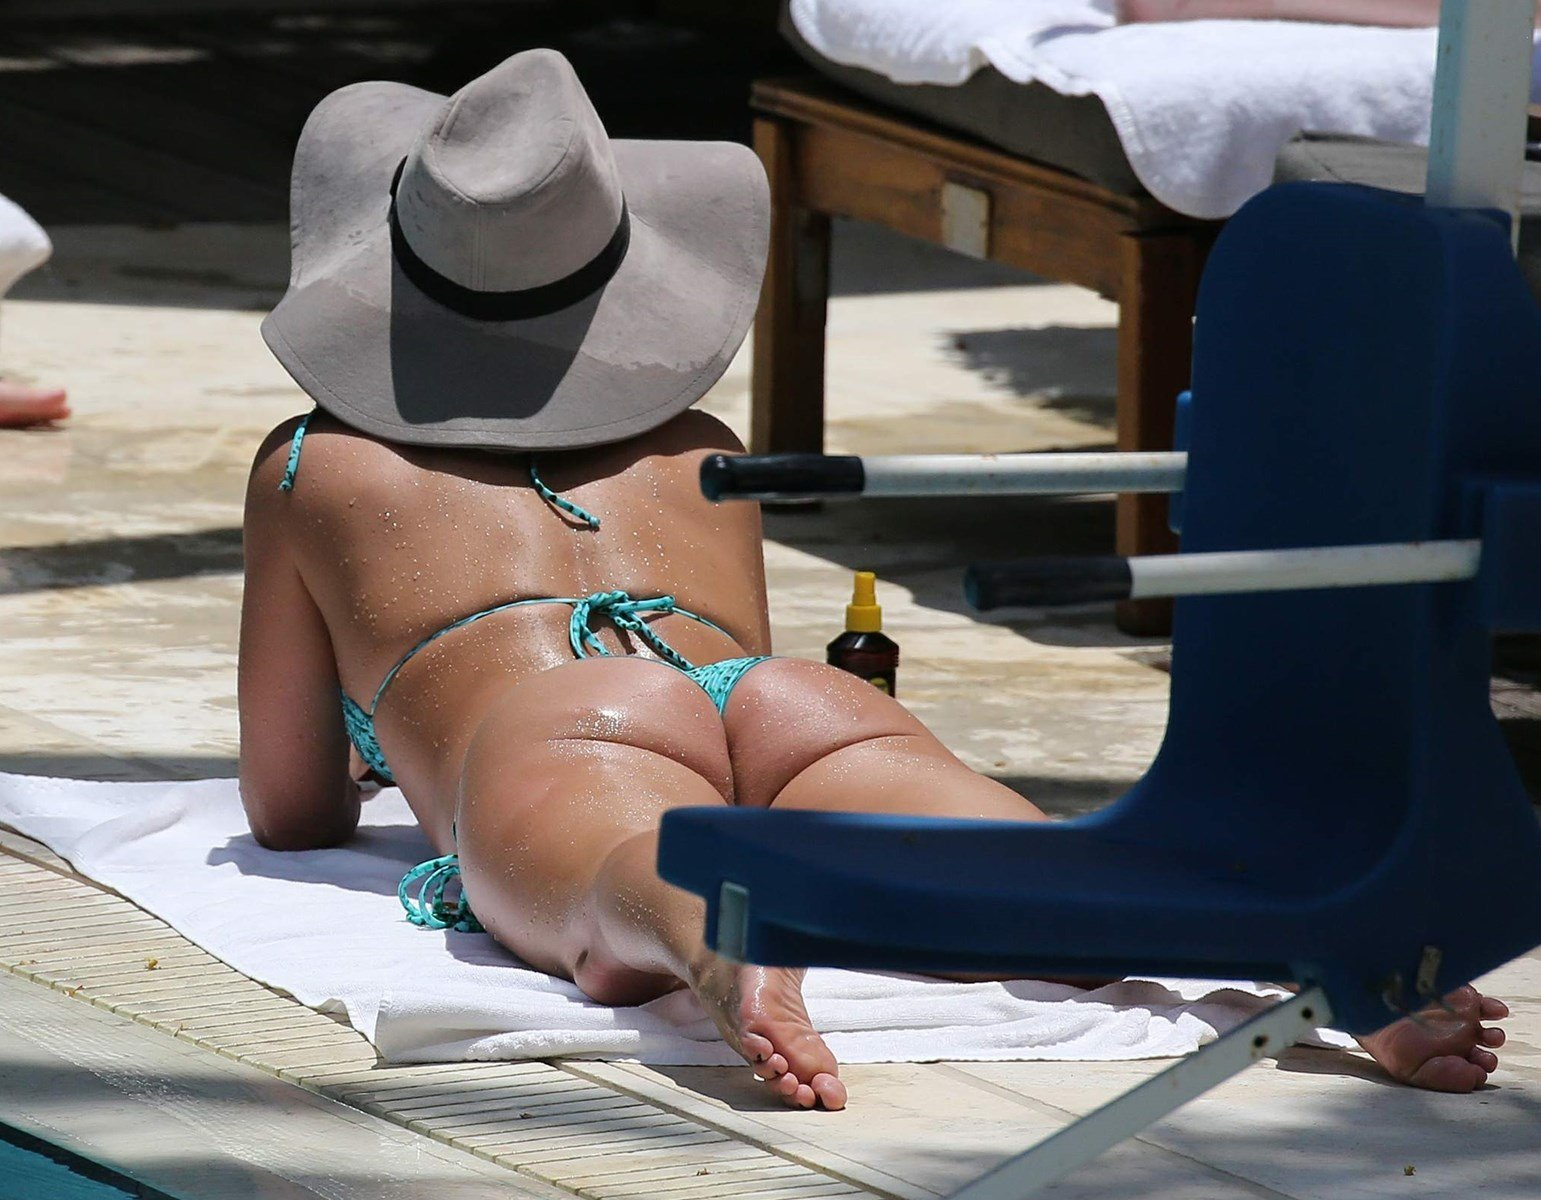 Britney Spears Airs Out Her Butthole In A Bikini